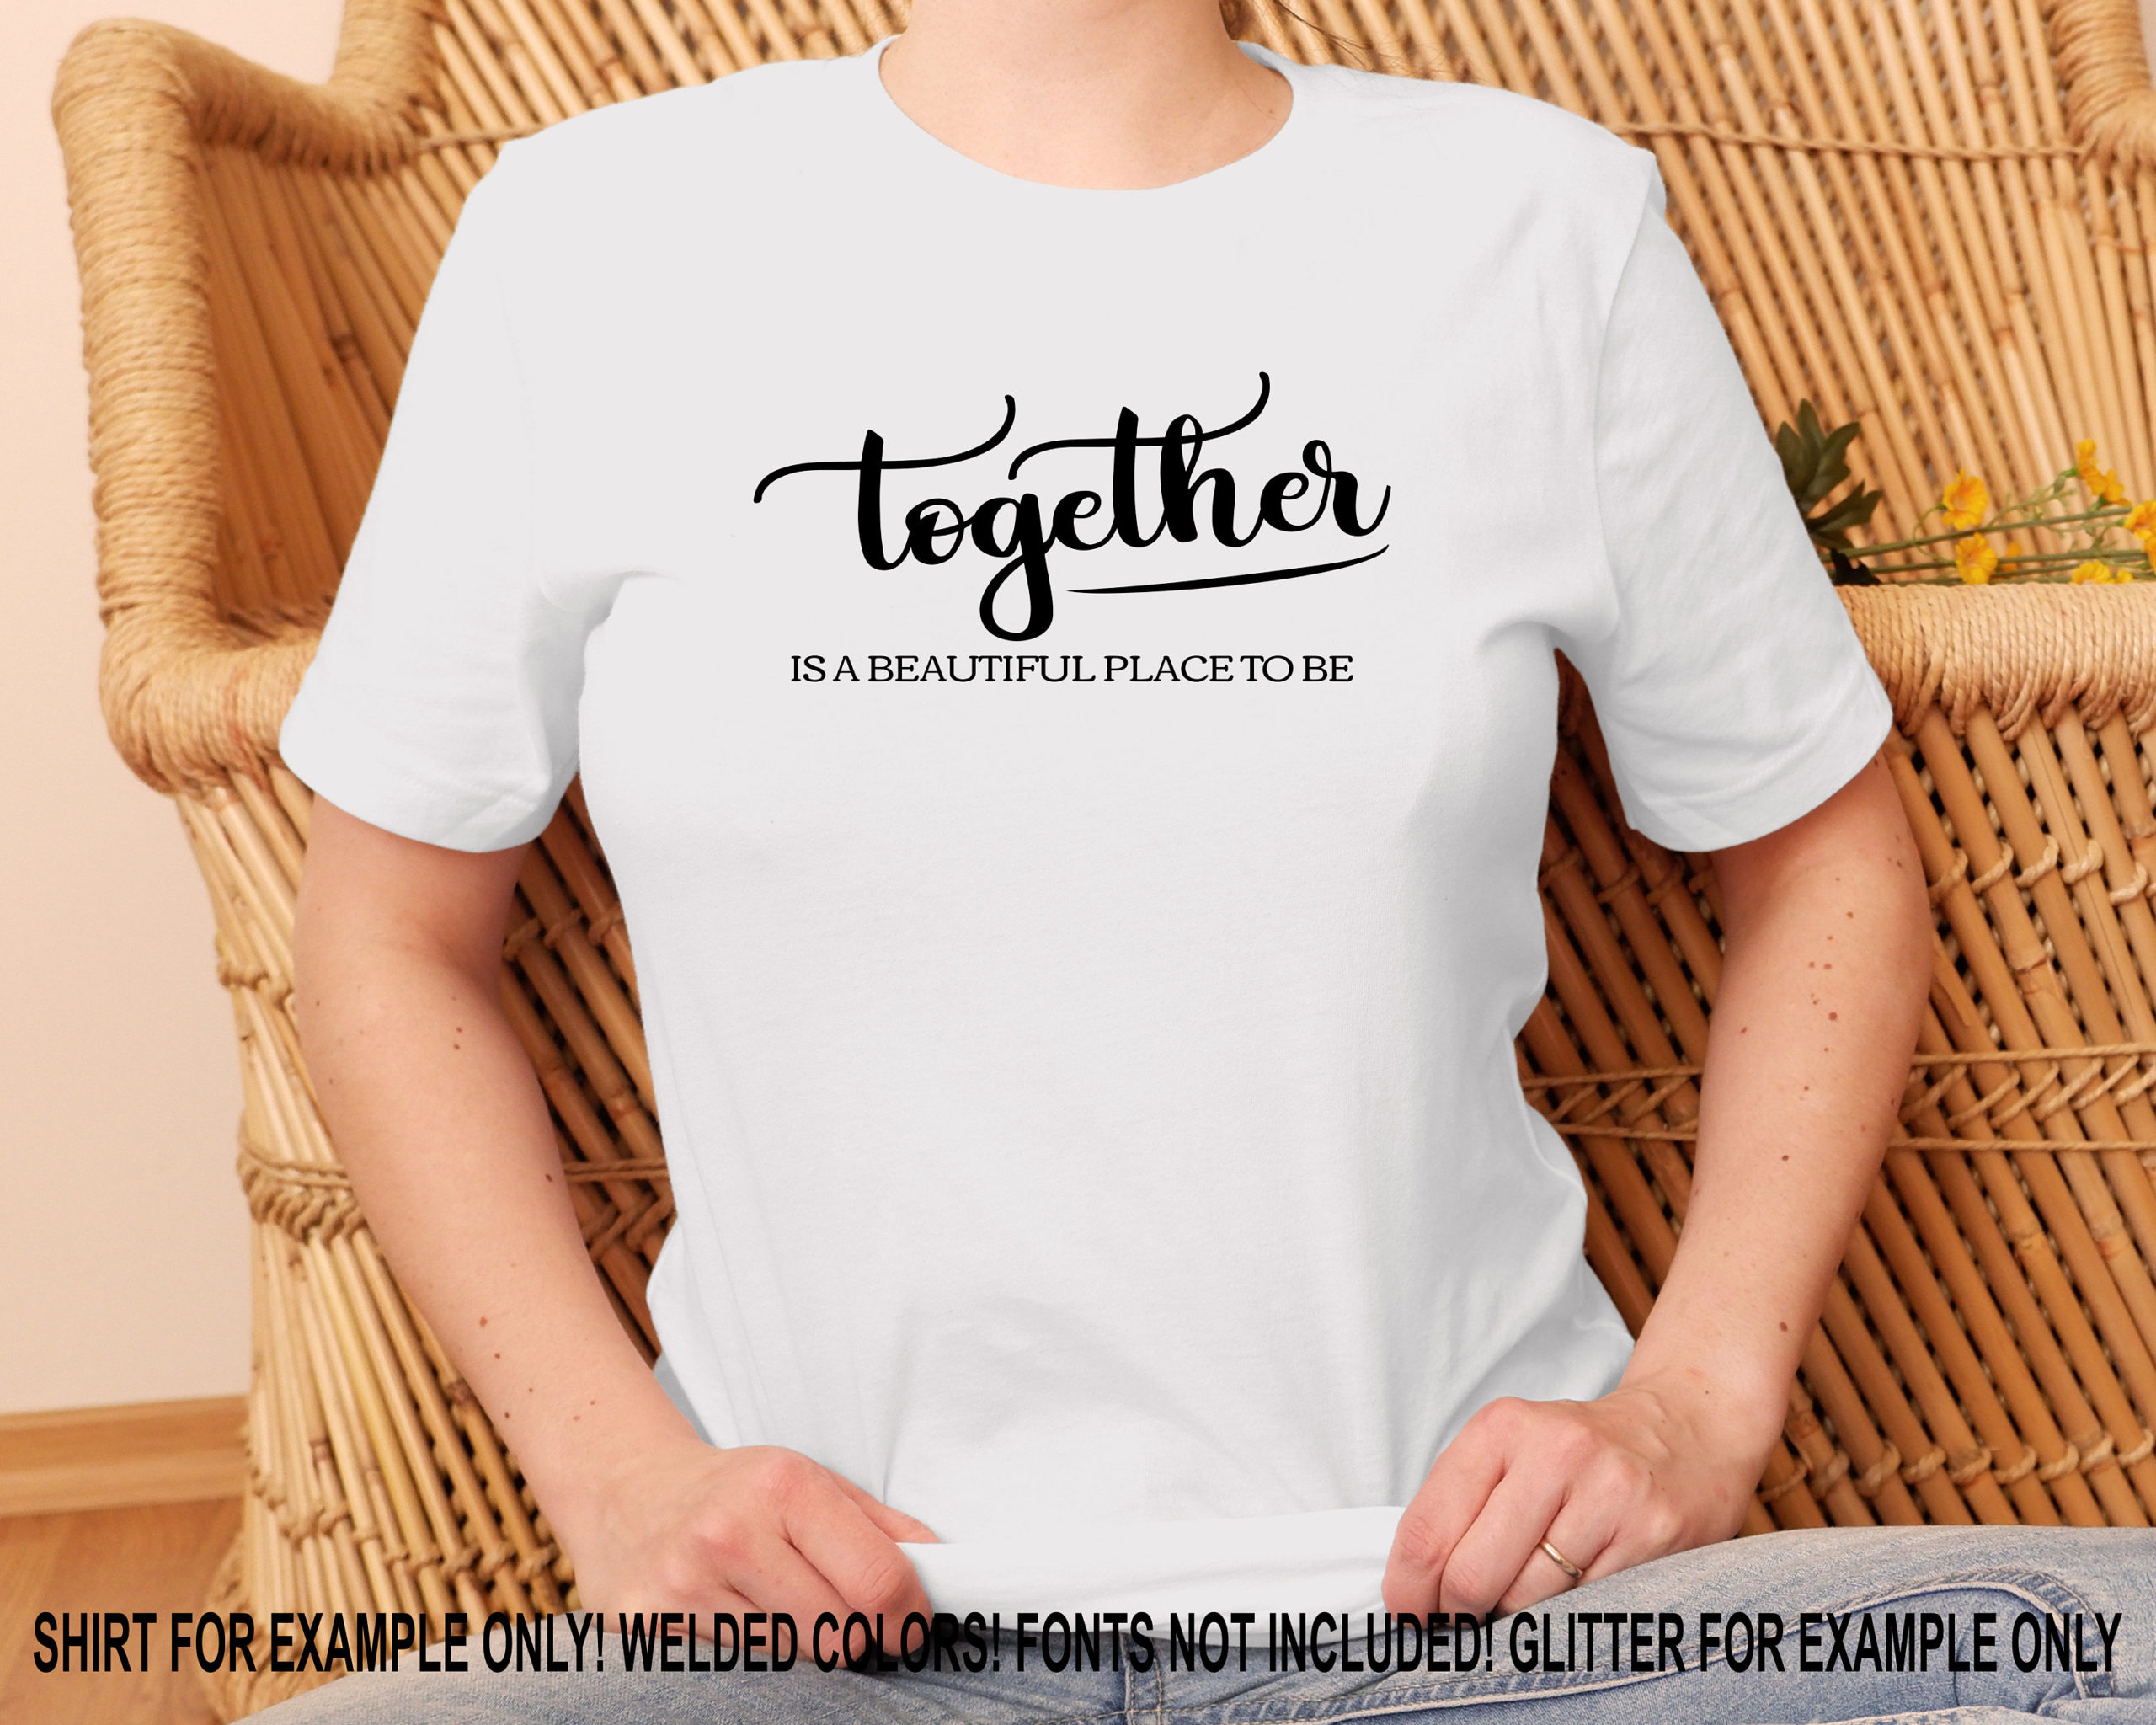 Together-is-a-beautiful-place-to-be-svgvalentine-svglove-svgvalentinesheart-svgvalentine-svg-designsvalentine-cut-filecricut-svg-600a05a7